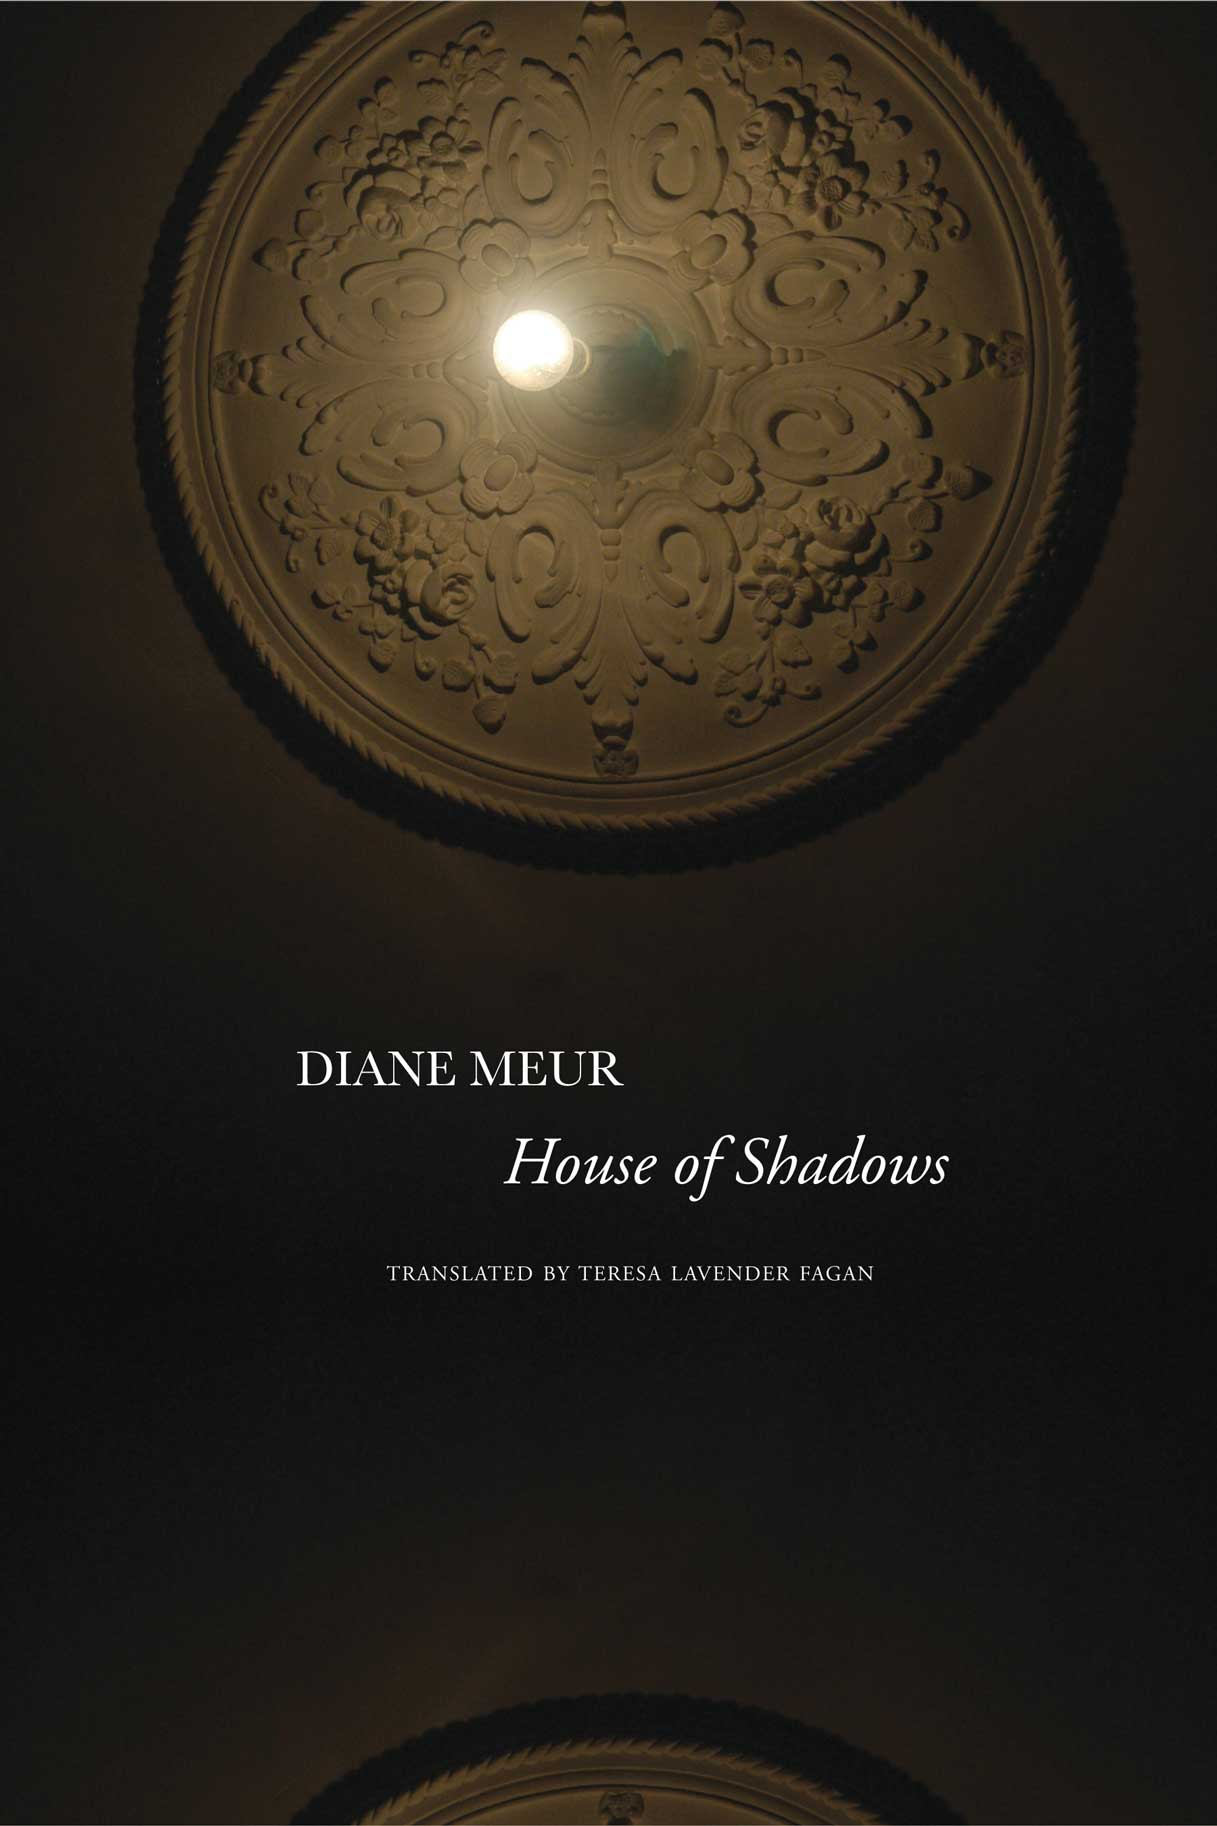 House of Shadows by Diane Meur |  Seagull Books